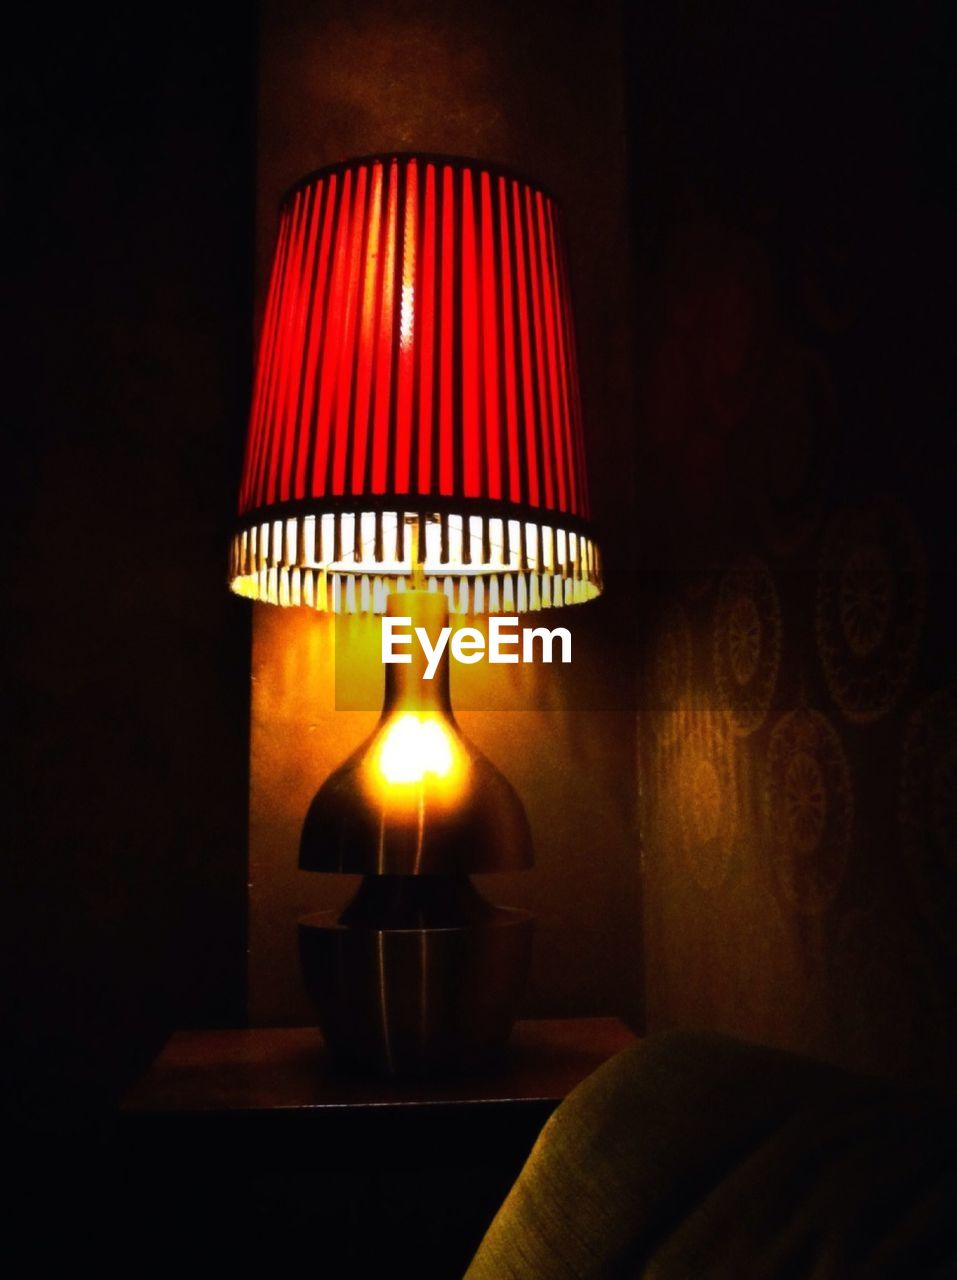 electric lamp, lighting equipment, illuminated, lamp shade, electricity, indoors, glowing, electric light, home interior, side table, light bulb, floor lamp, close-up, red, night, living room, no people, technology, home showcase interior